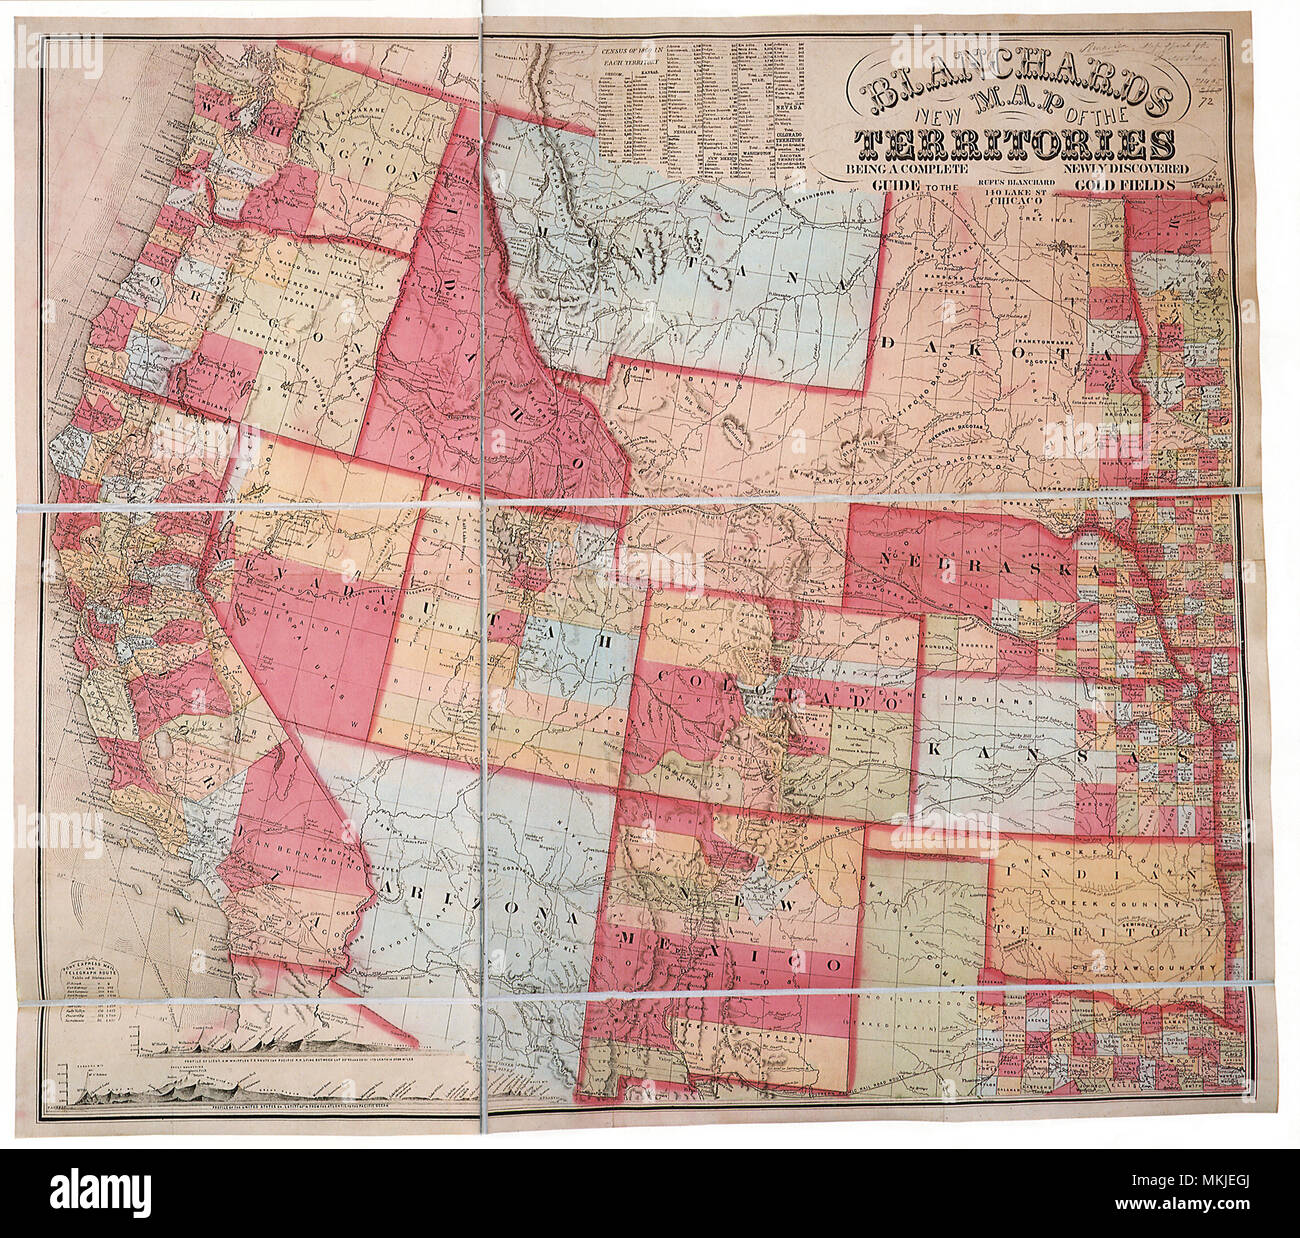 Map of West-1860s - Stock Image